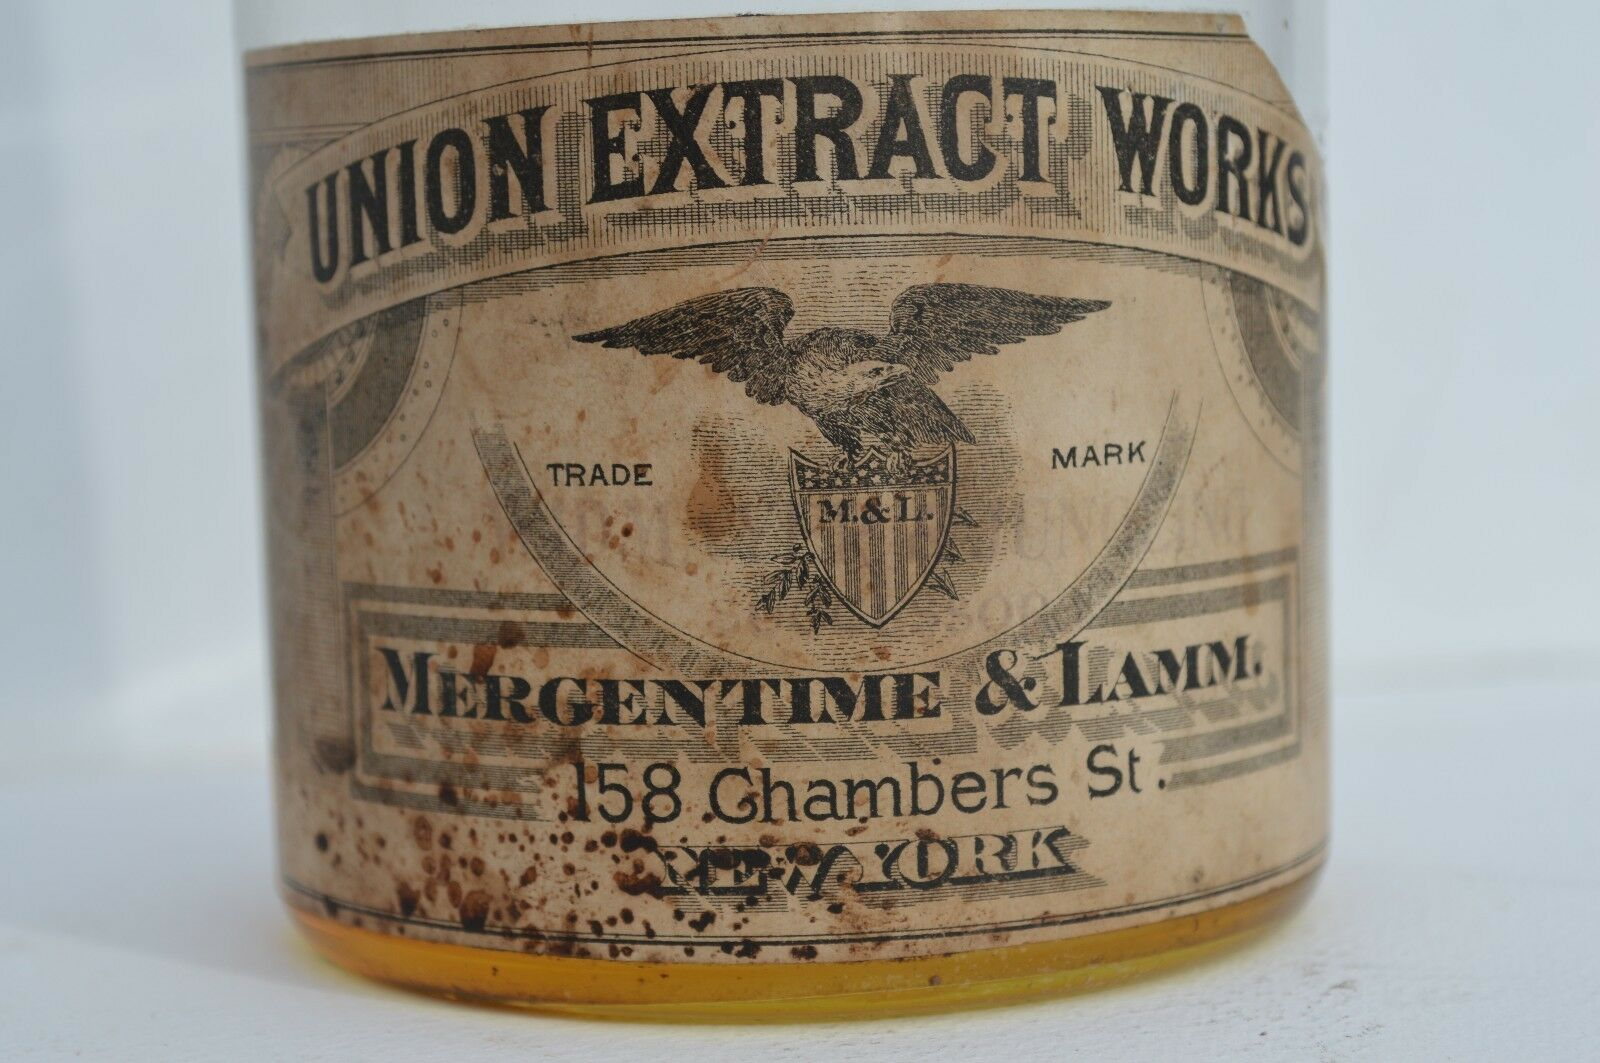 EARLY UNION EXTRACT BOTTLE WORKS BOTTLE EXTRACT BY MERGENTIME & LAMM IN NEW YORK PAPER LABEL 7c94b3